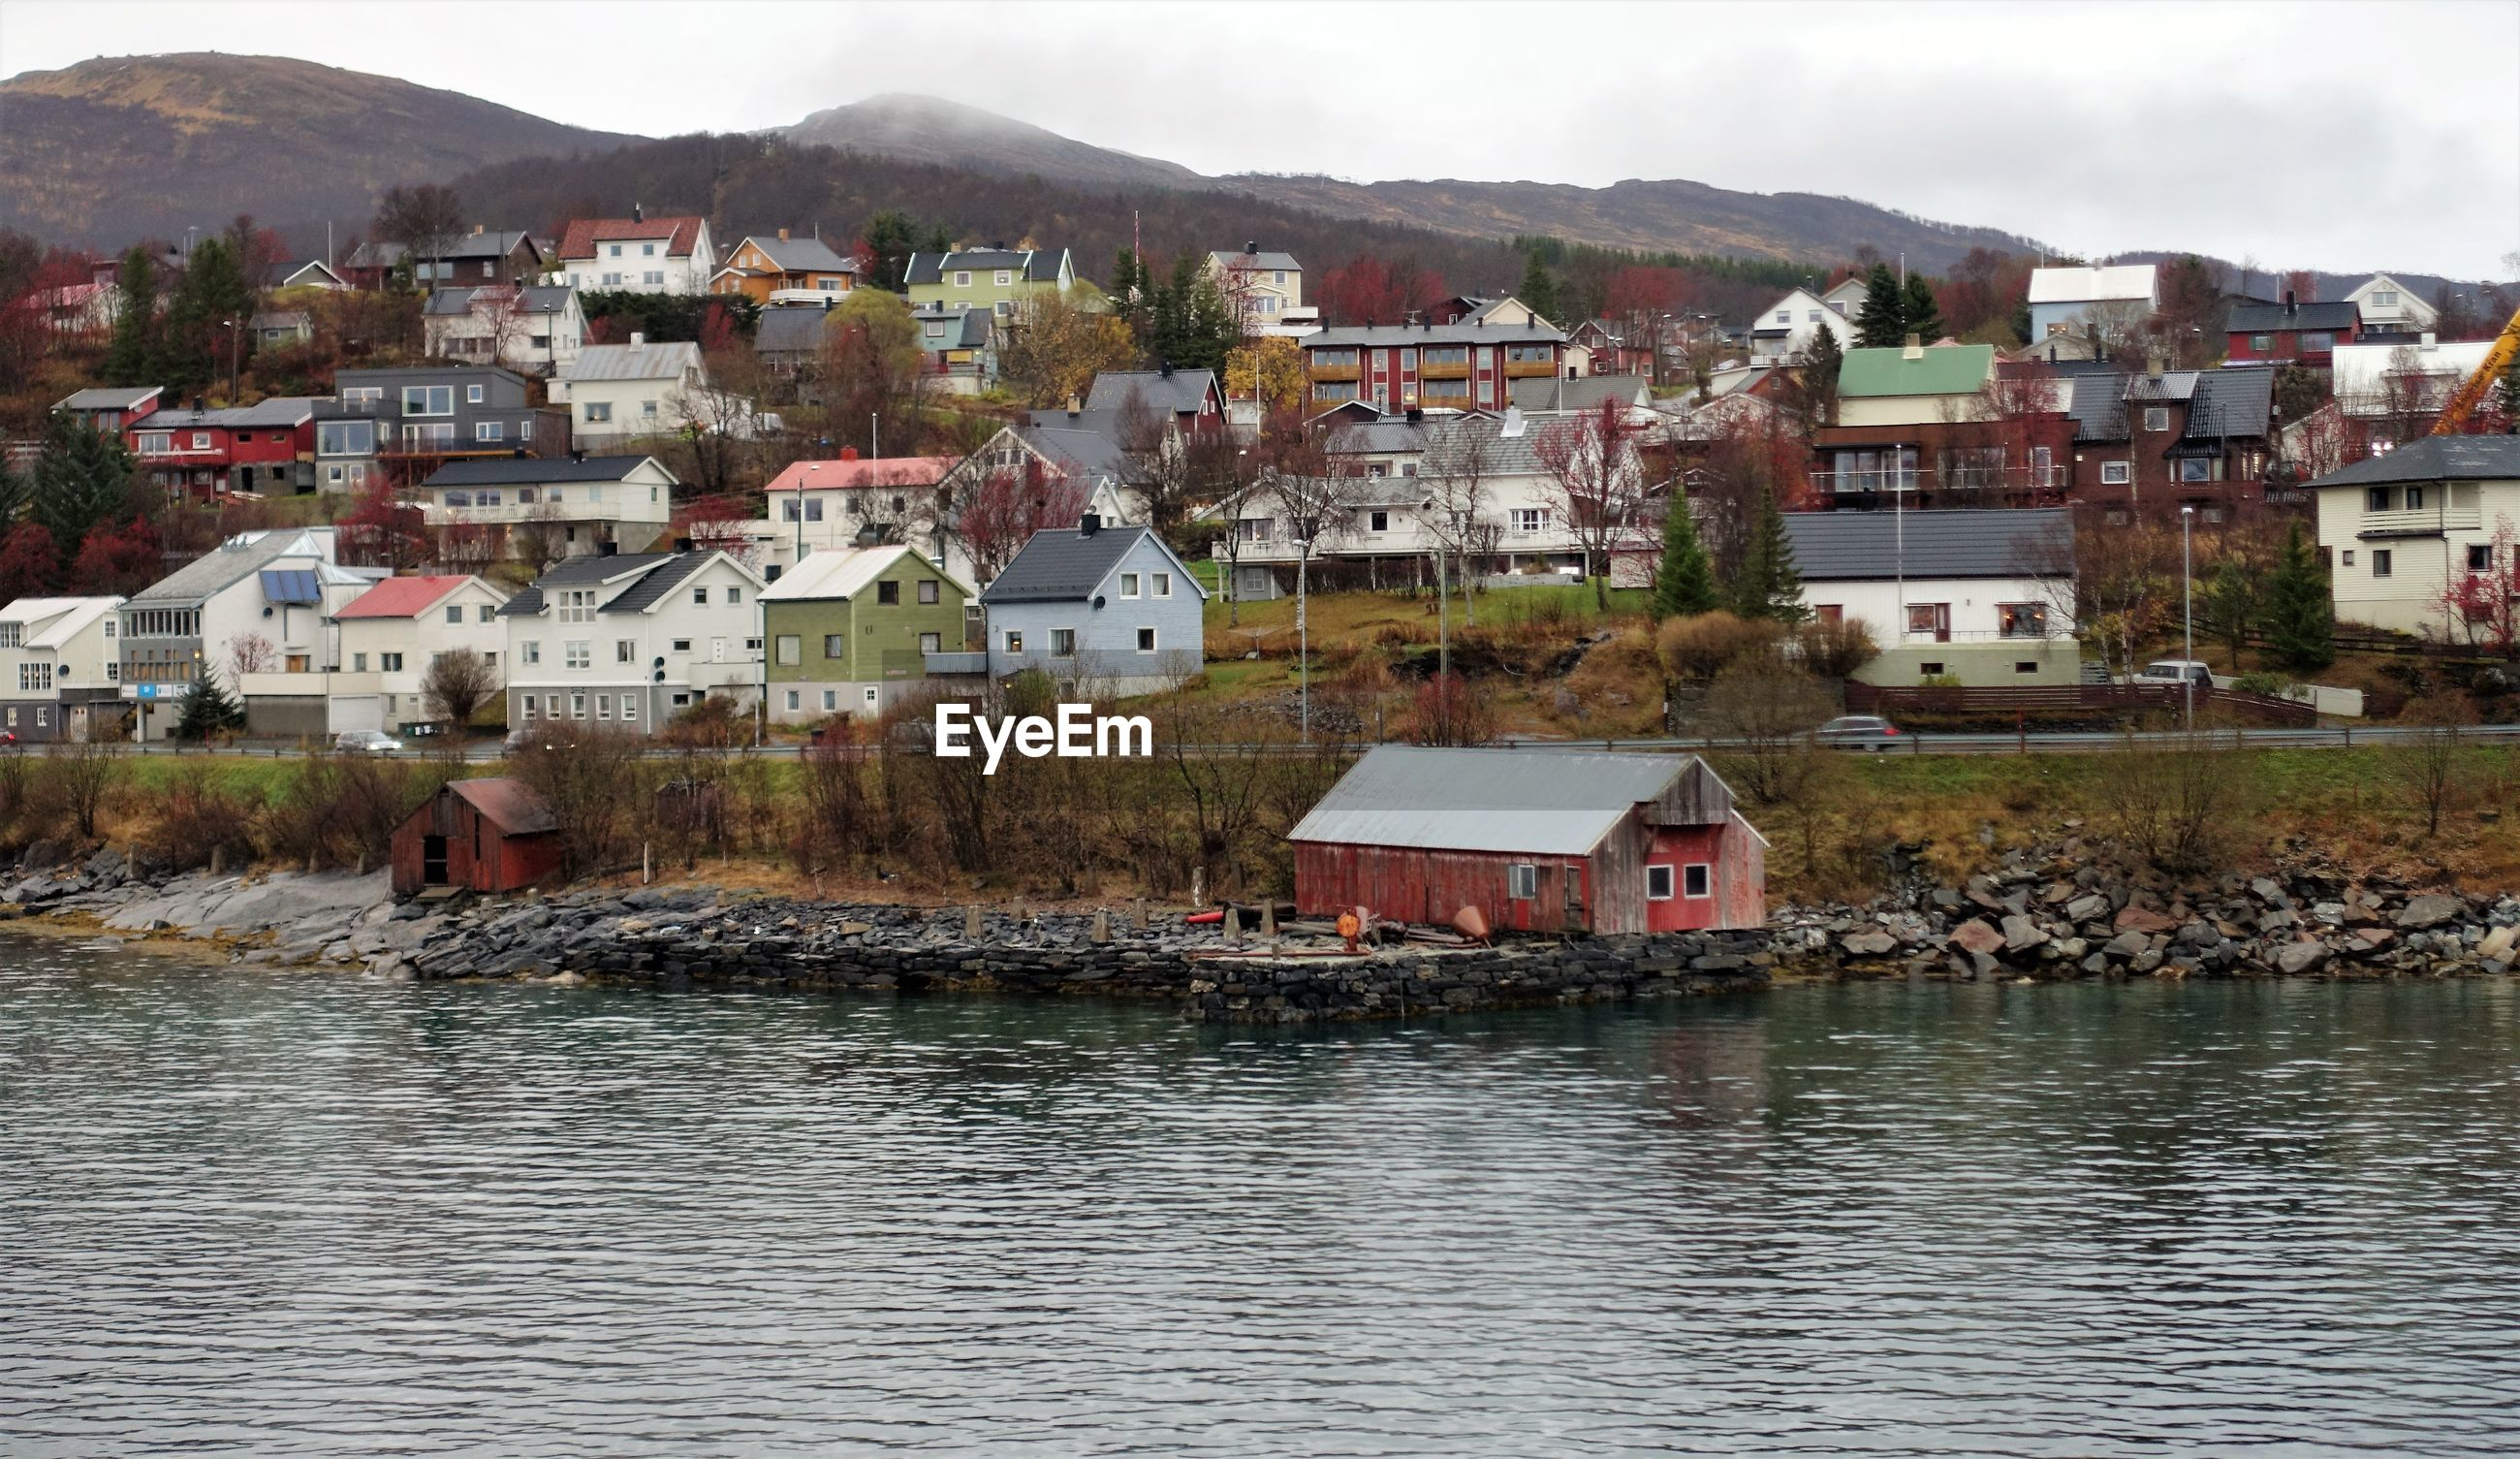 TOWN BY LAKE AND BUILDINGS IN CITY